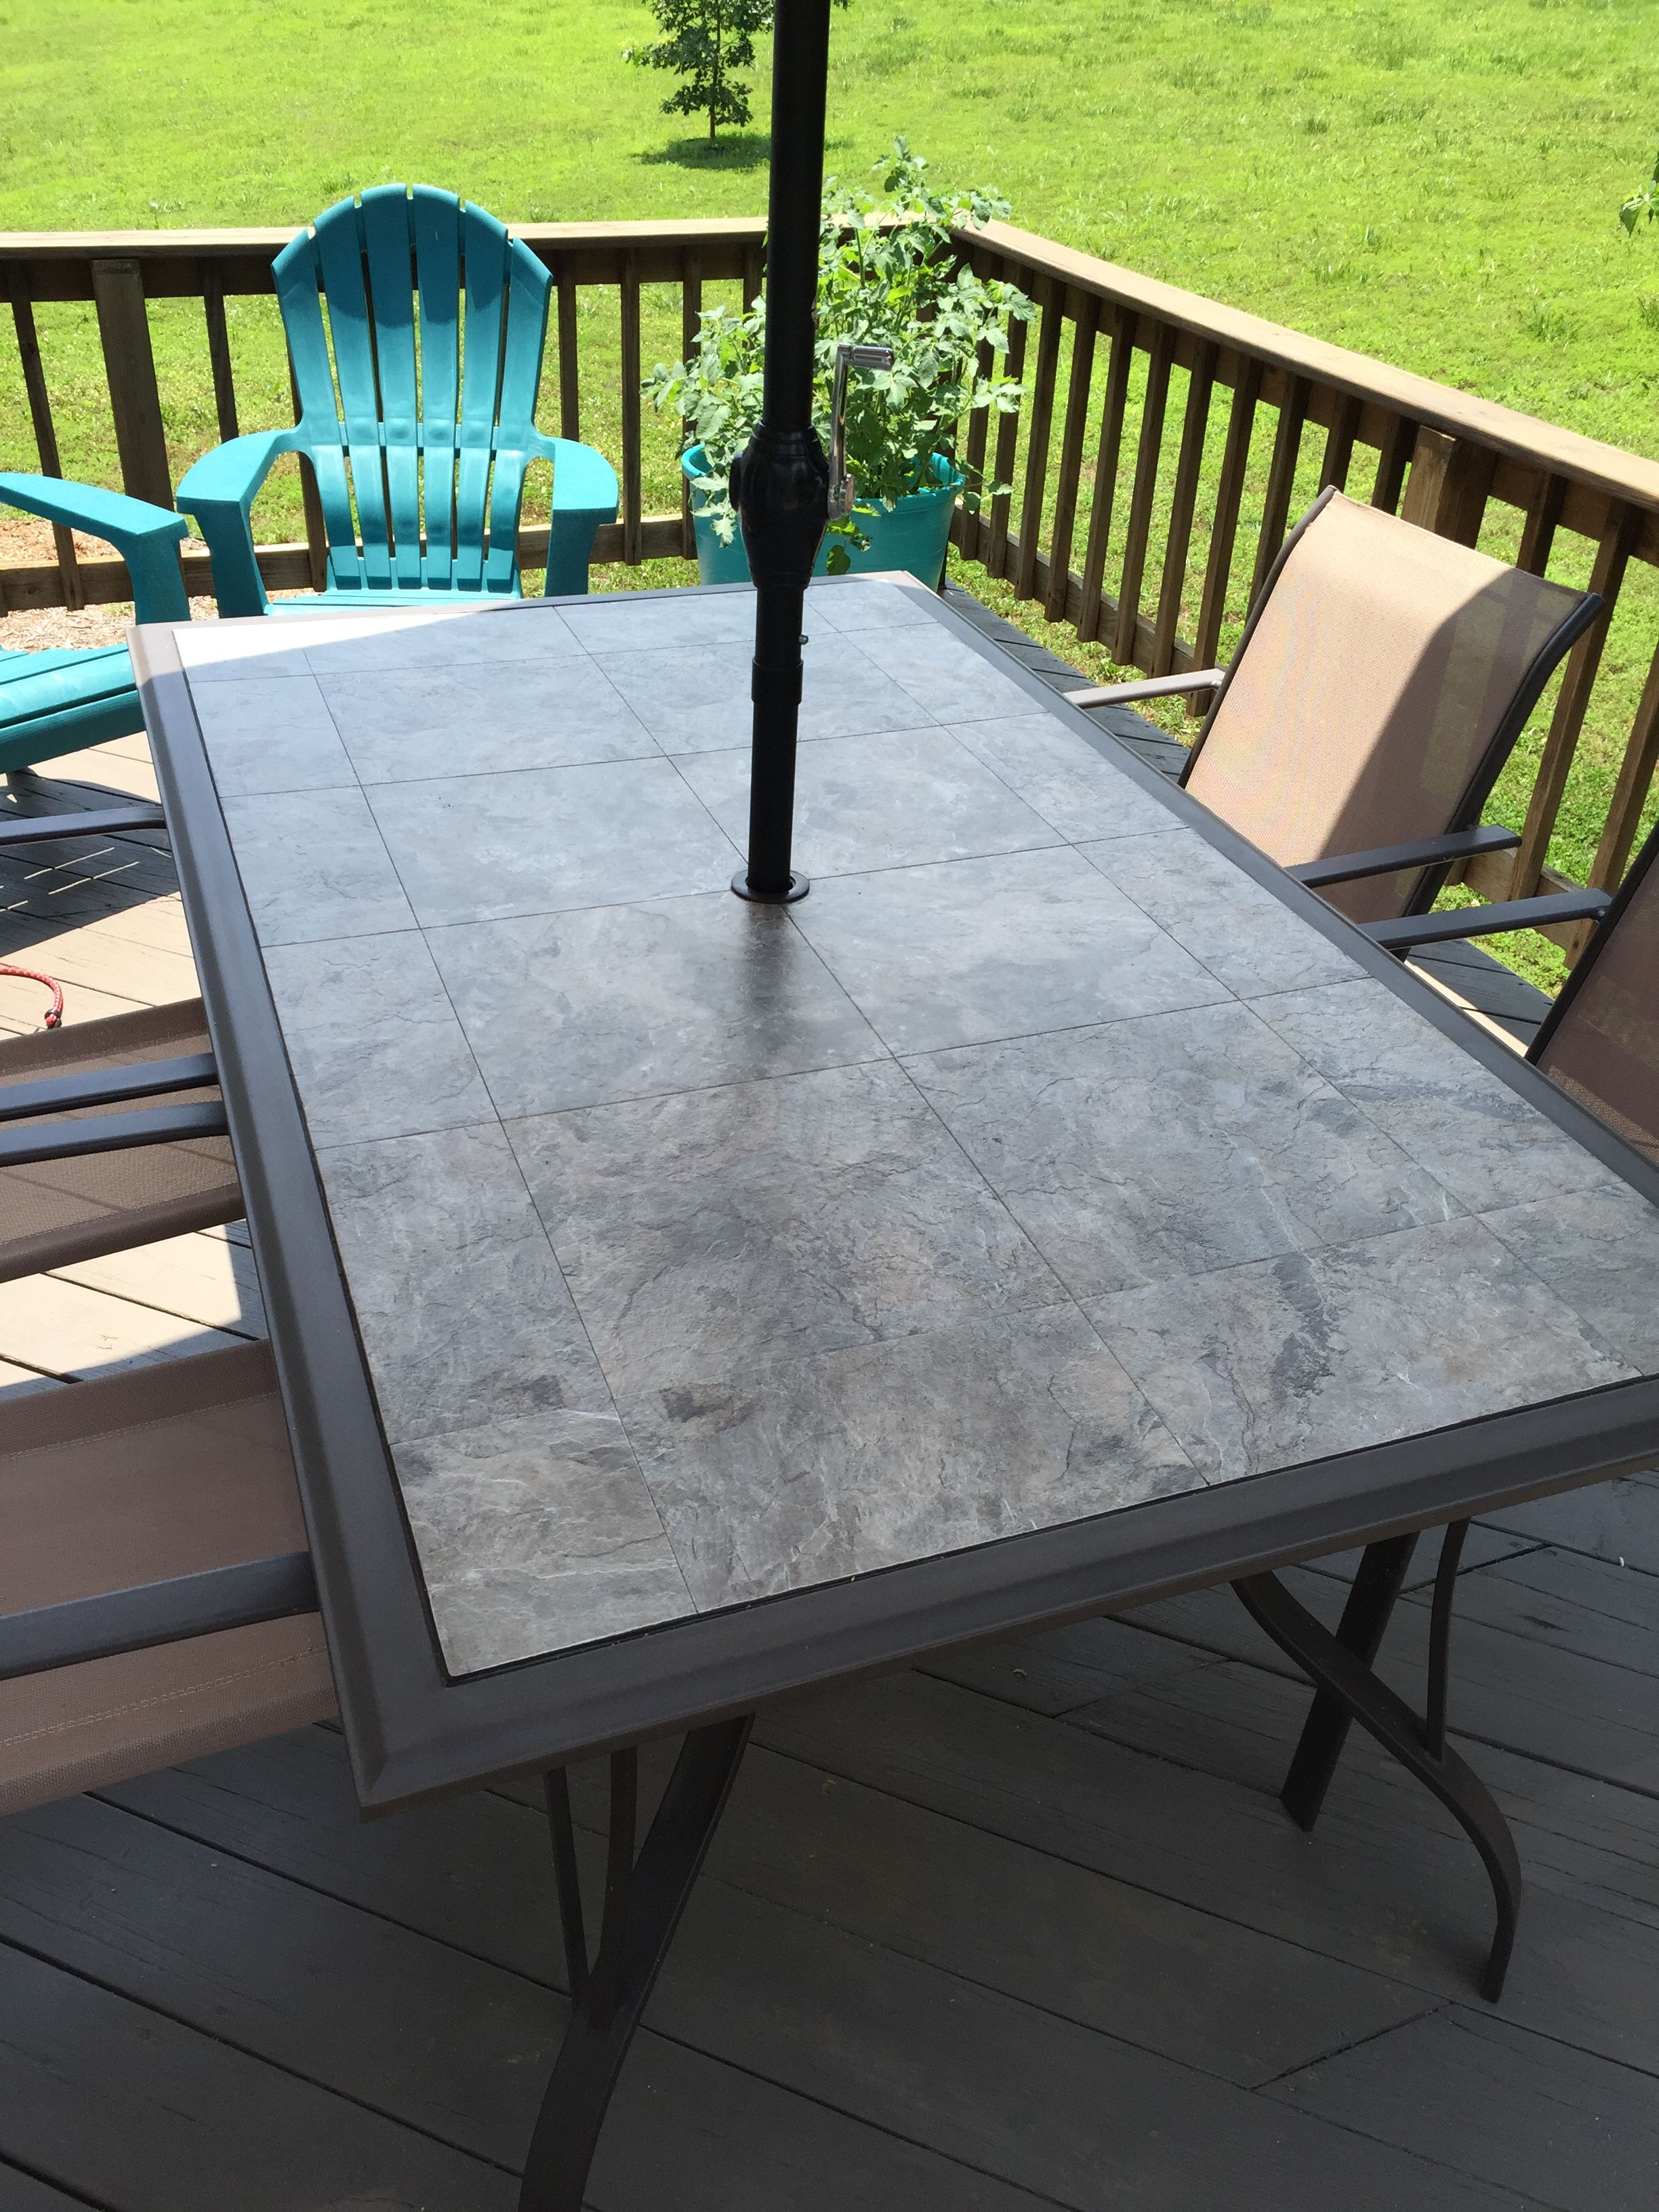 The Glass Table Top Shattered In 1 000 Pieces When The Breeze